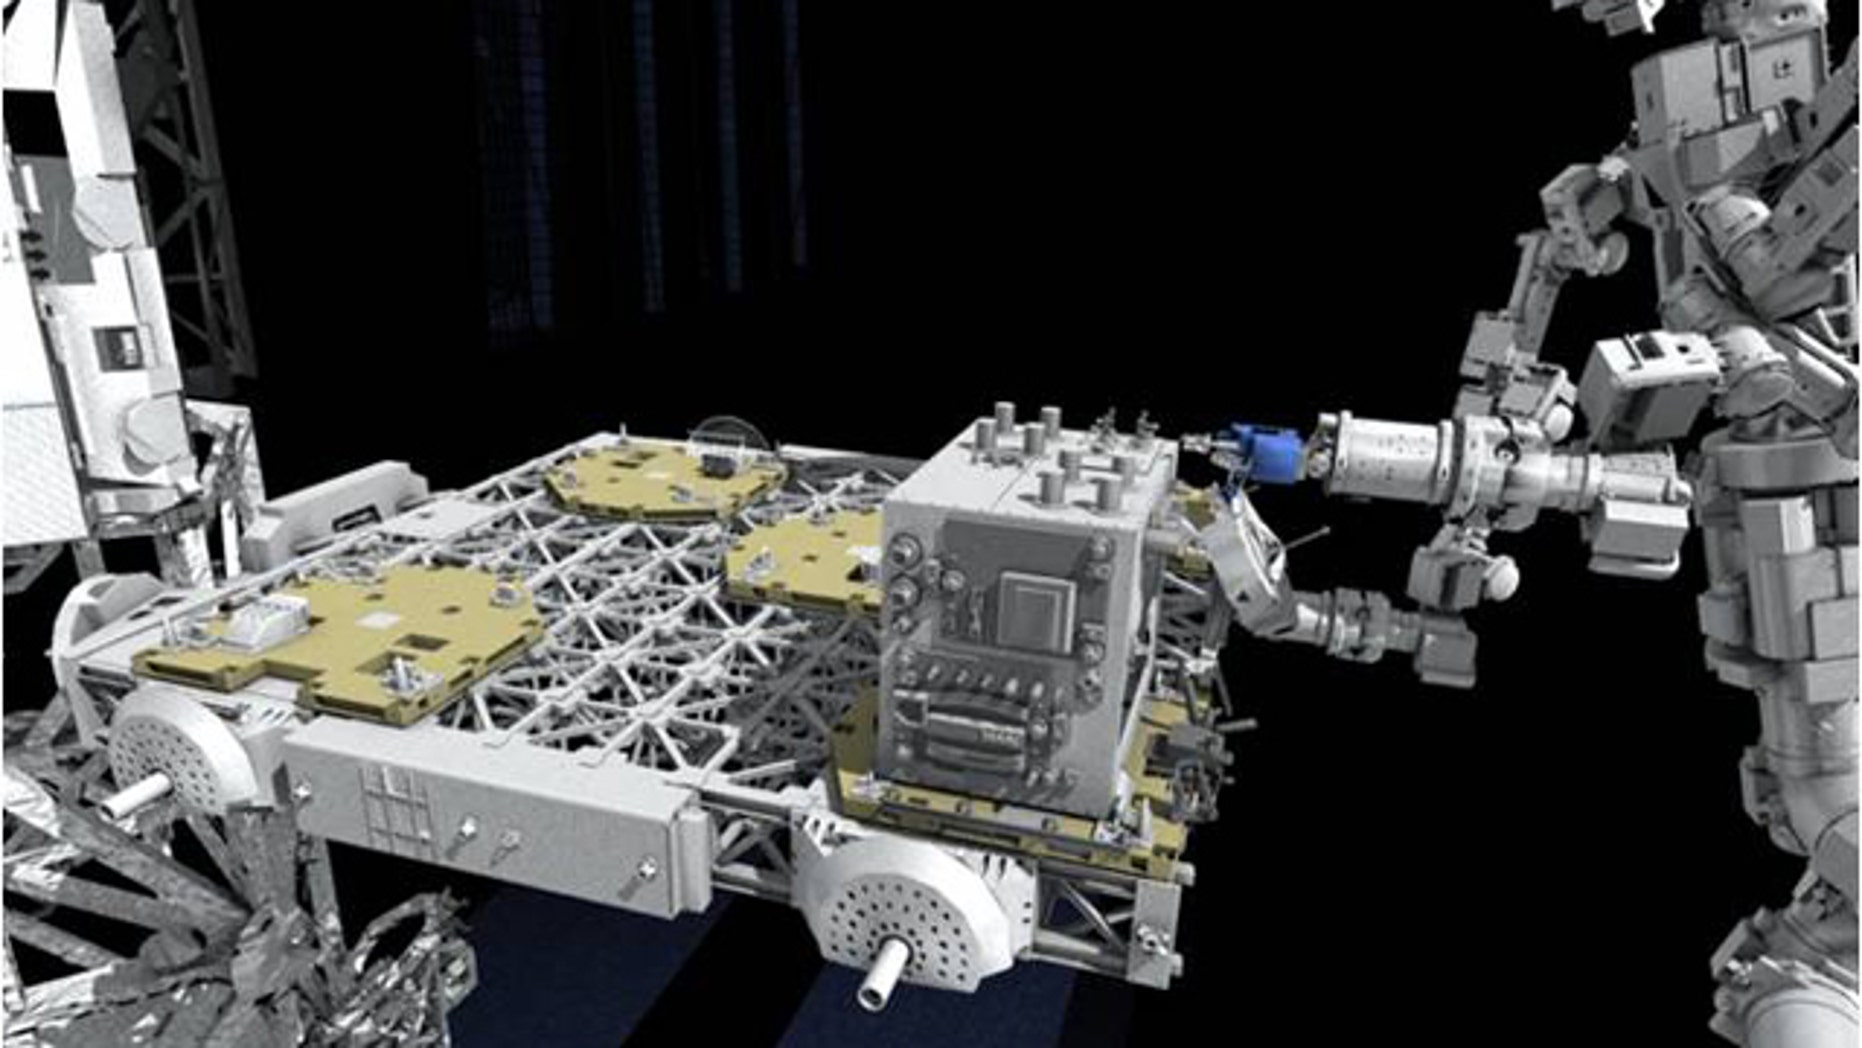 The Dextre robot will help affix NASA's Robotic Refueling Mission experiment to the International Space Station's ExPRESS Logistics Carrier-4.